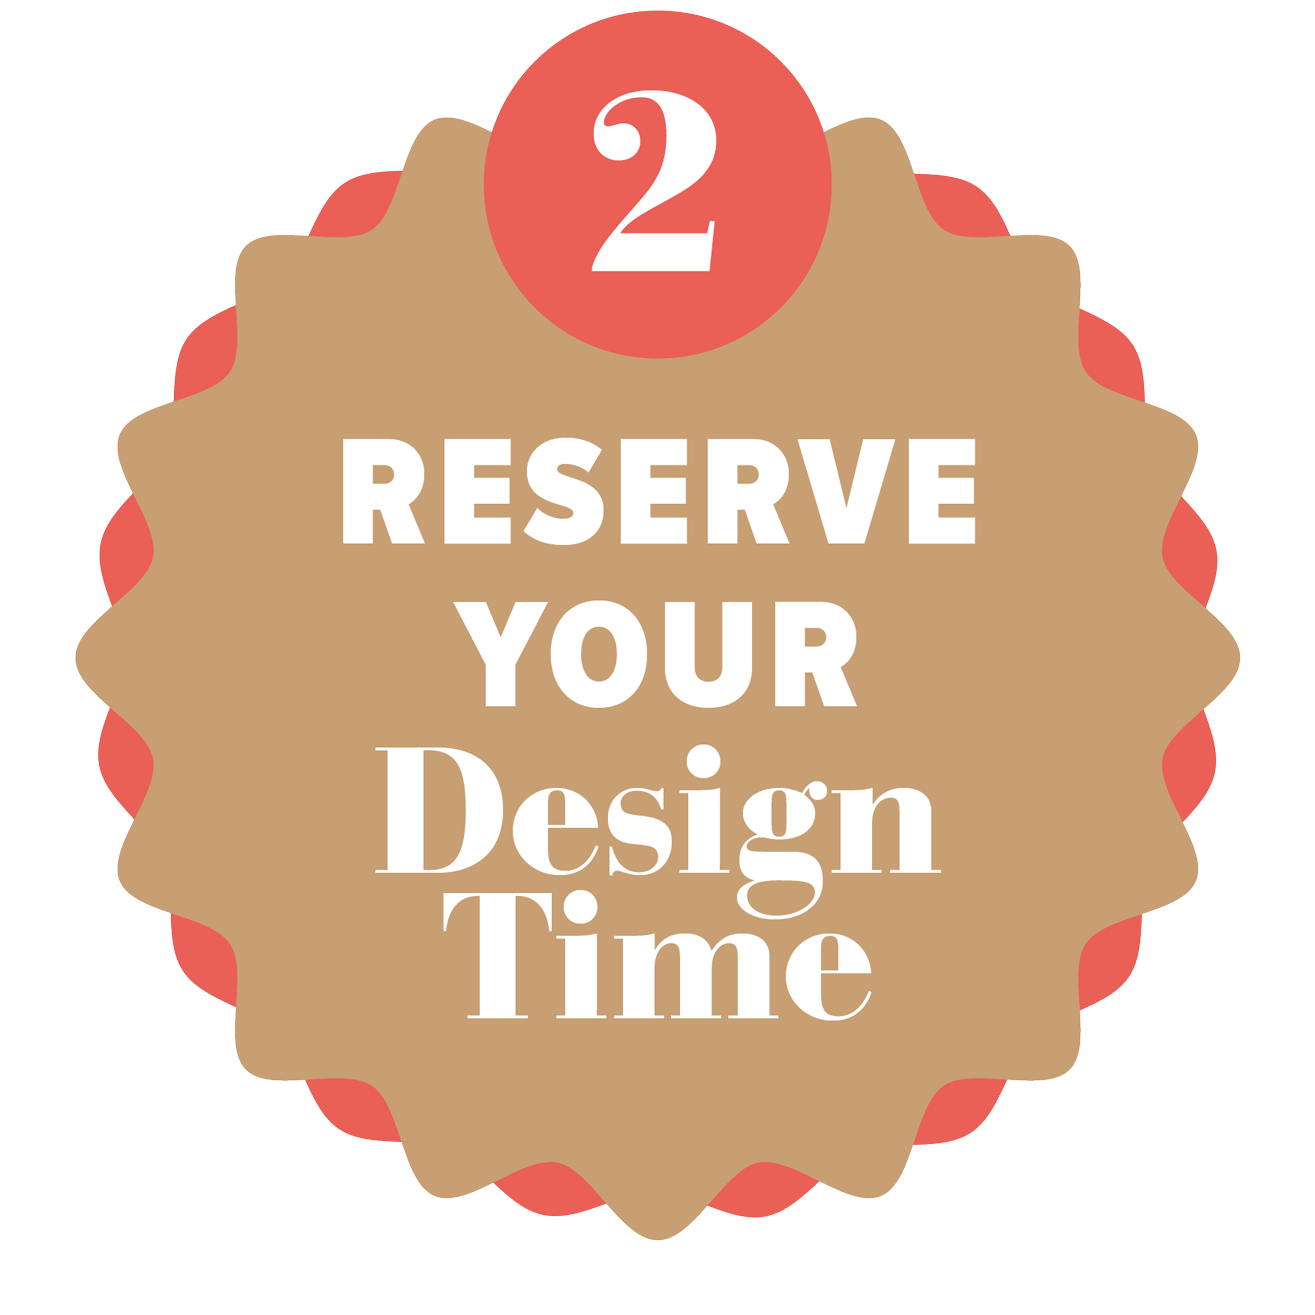 Reserve your website design week